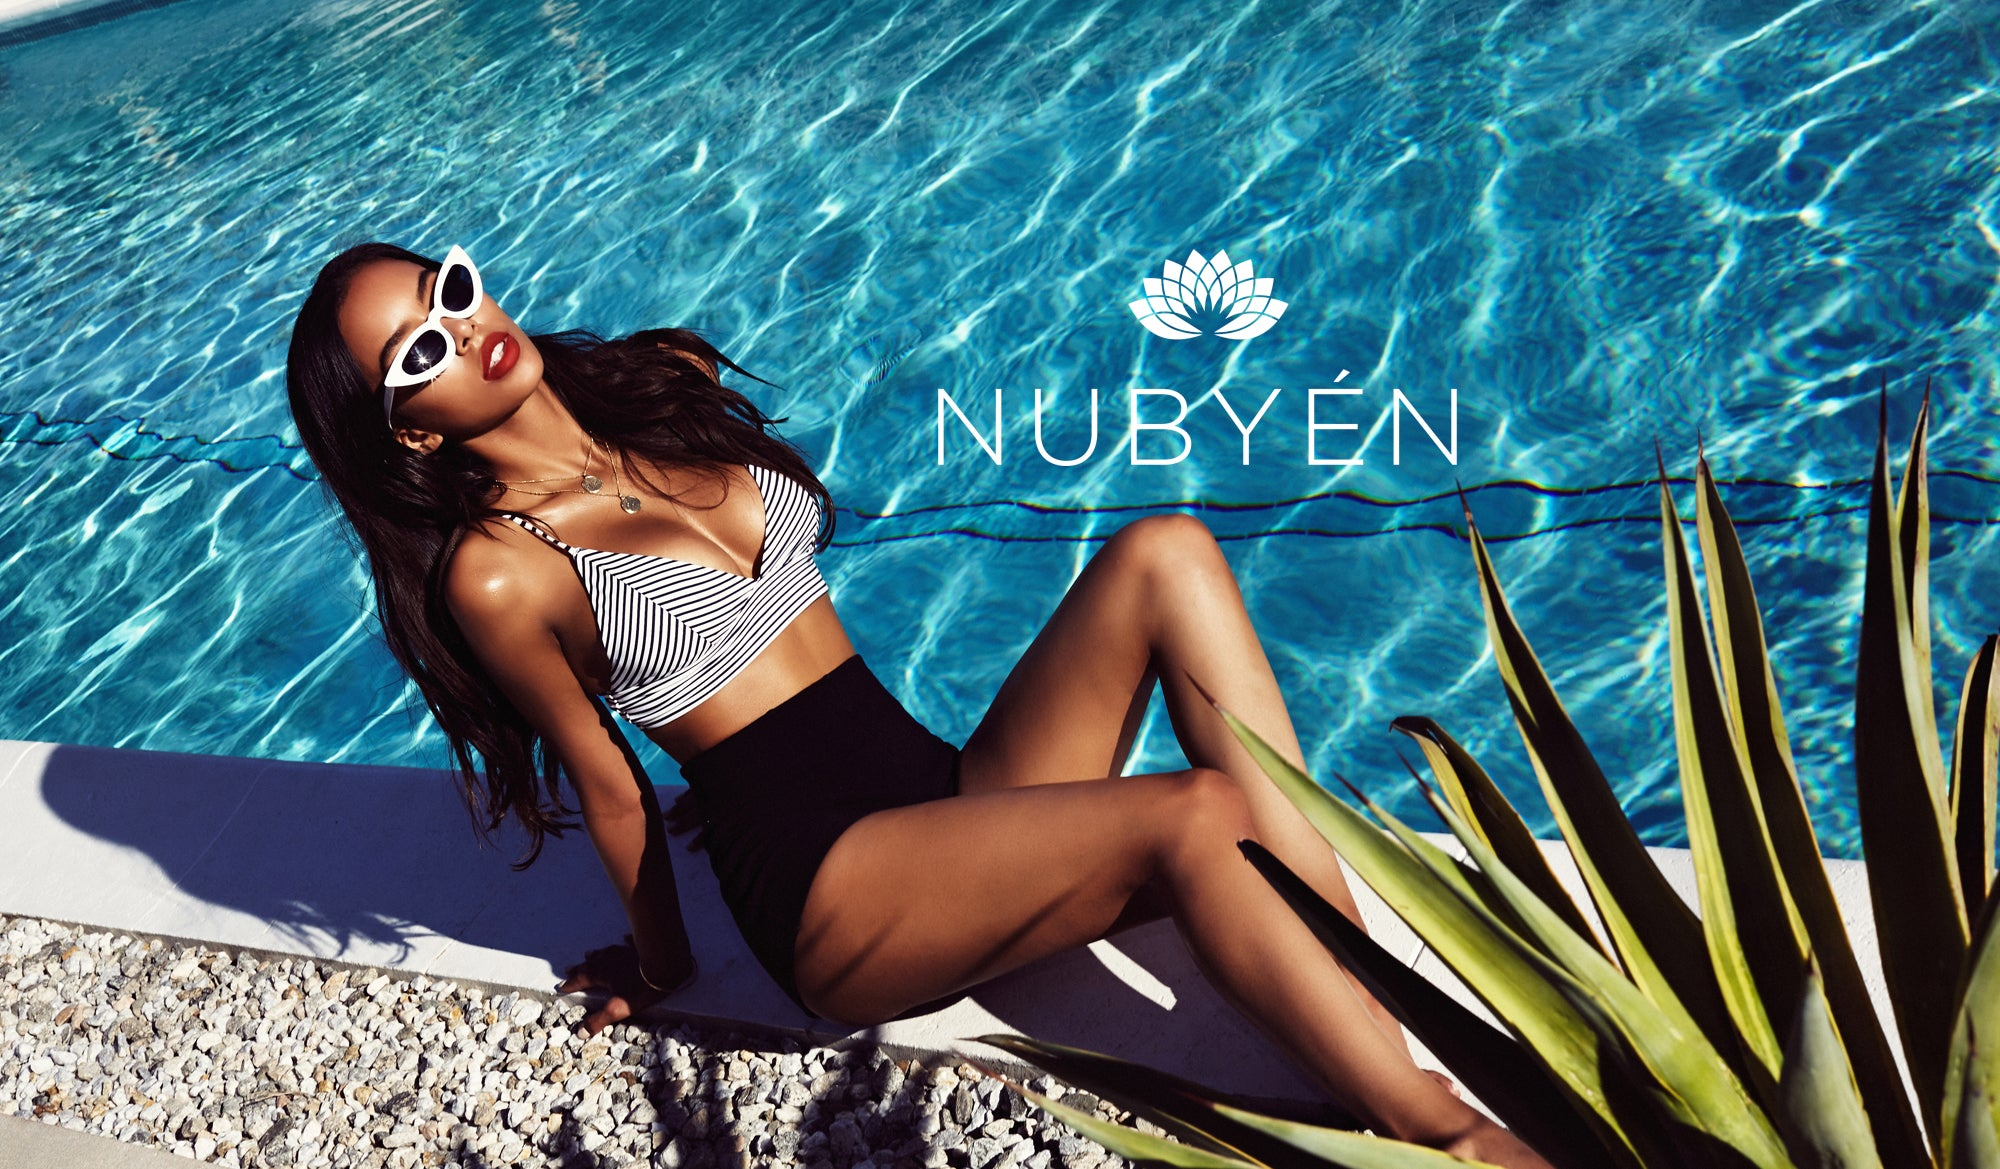 nubyen tribal, nubyen nude tribal, best lip plumper, matte gloss, matte lipgloss, lip injections, lip plumper, lip fillers, after lip injections, nubyen, nubyen nude , t